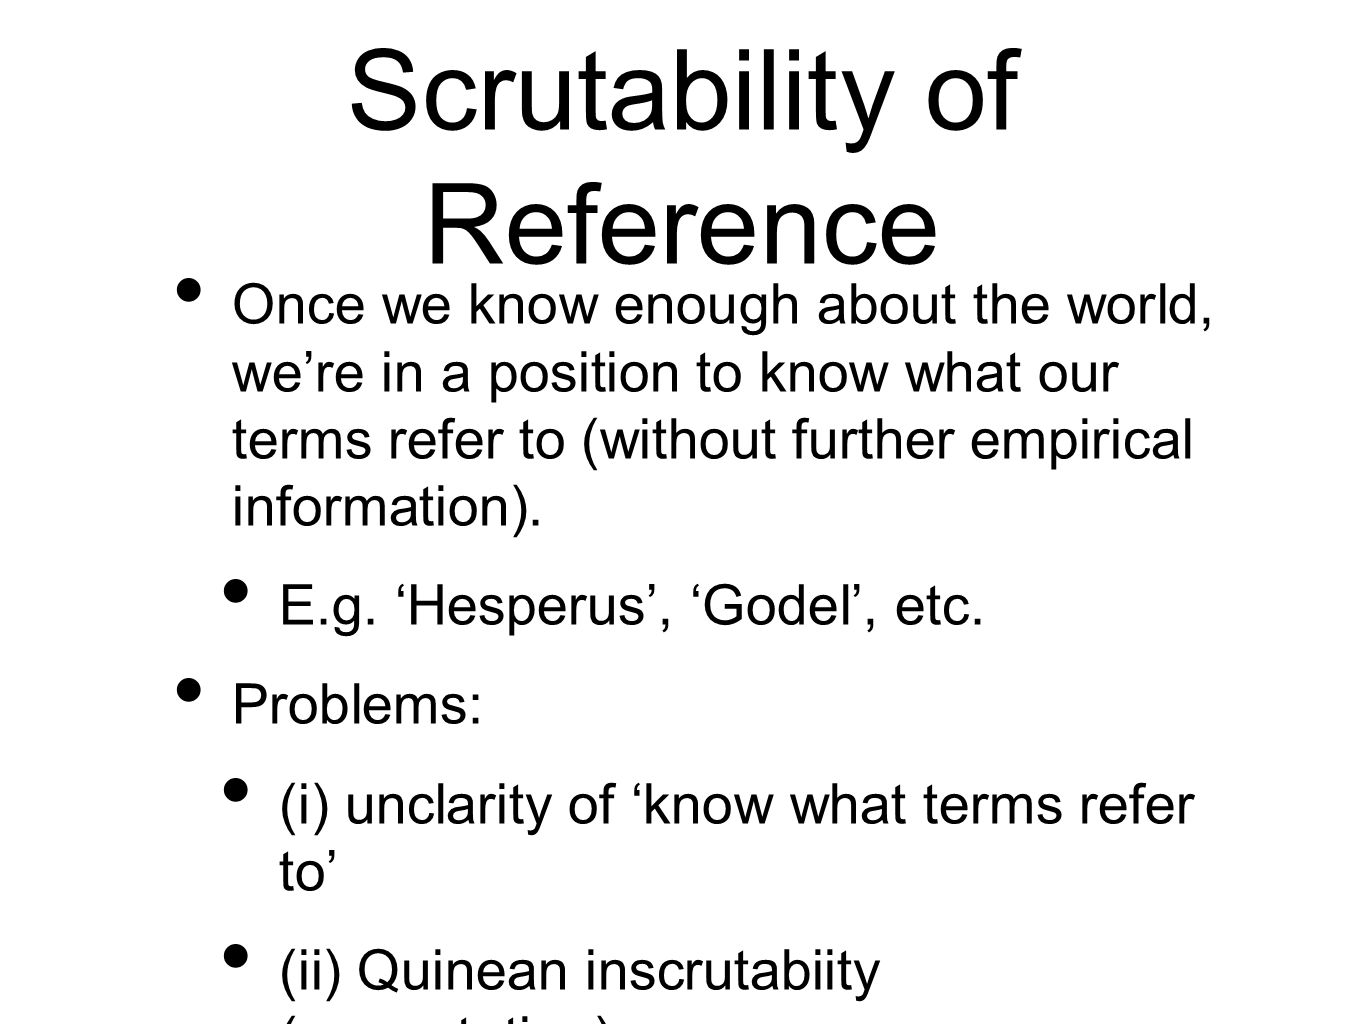 Scrutability of Reference